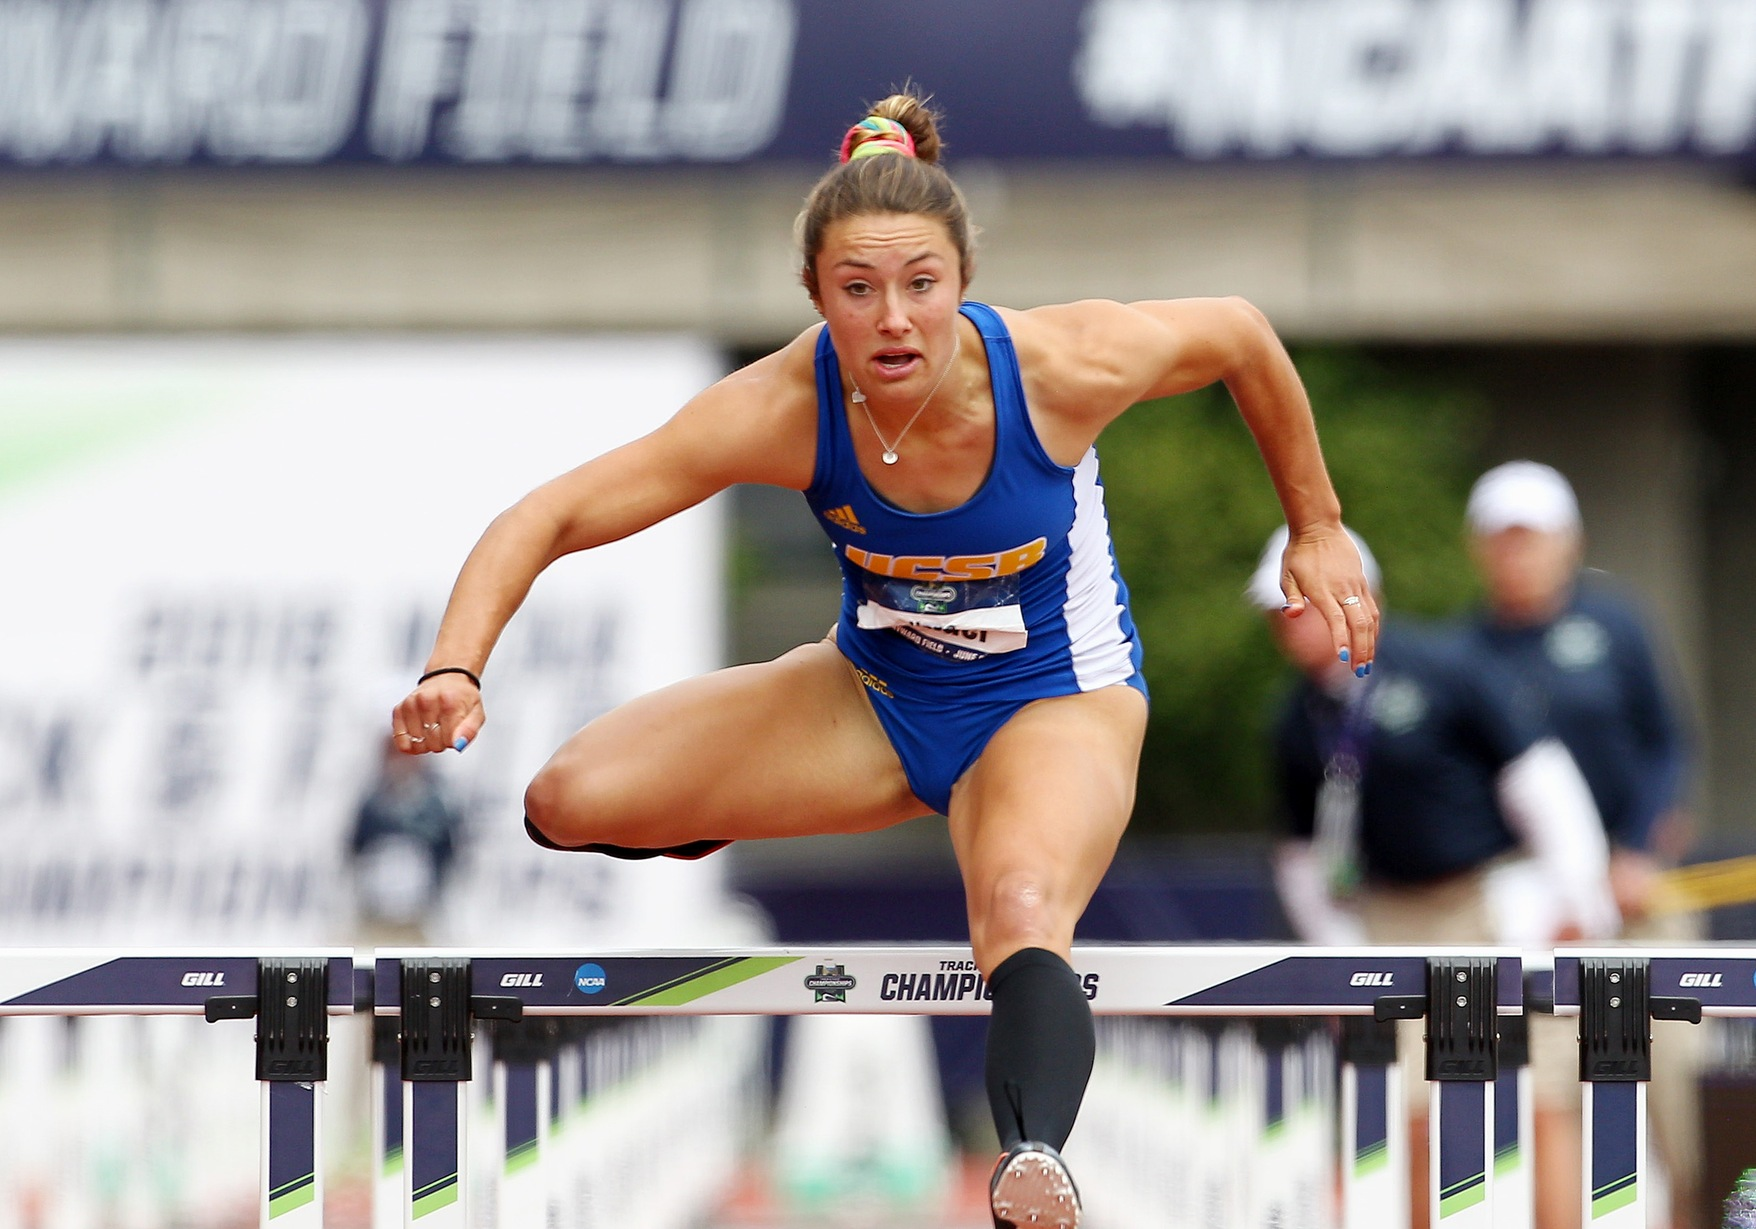 2nd-Team All-American Honors for Bender at NCAA Outdoor Championships